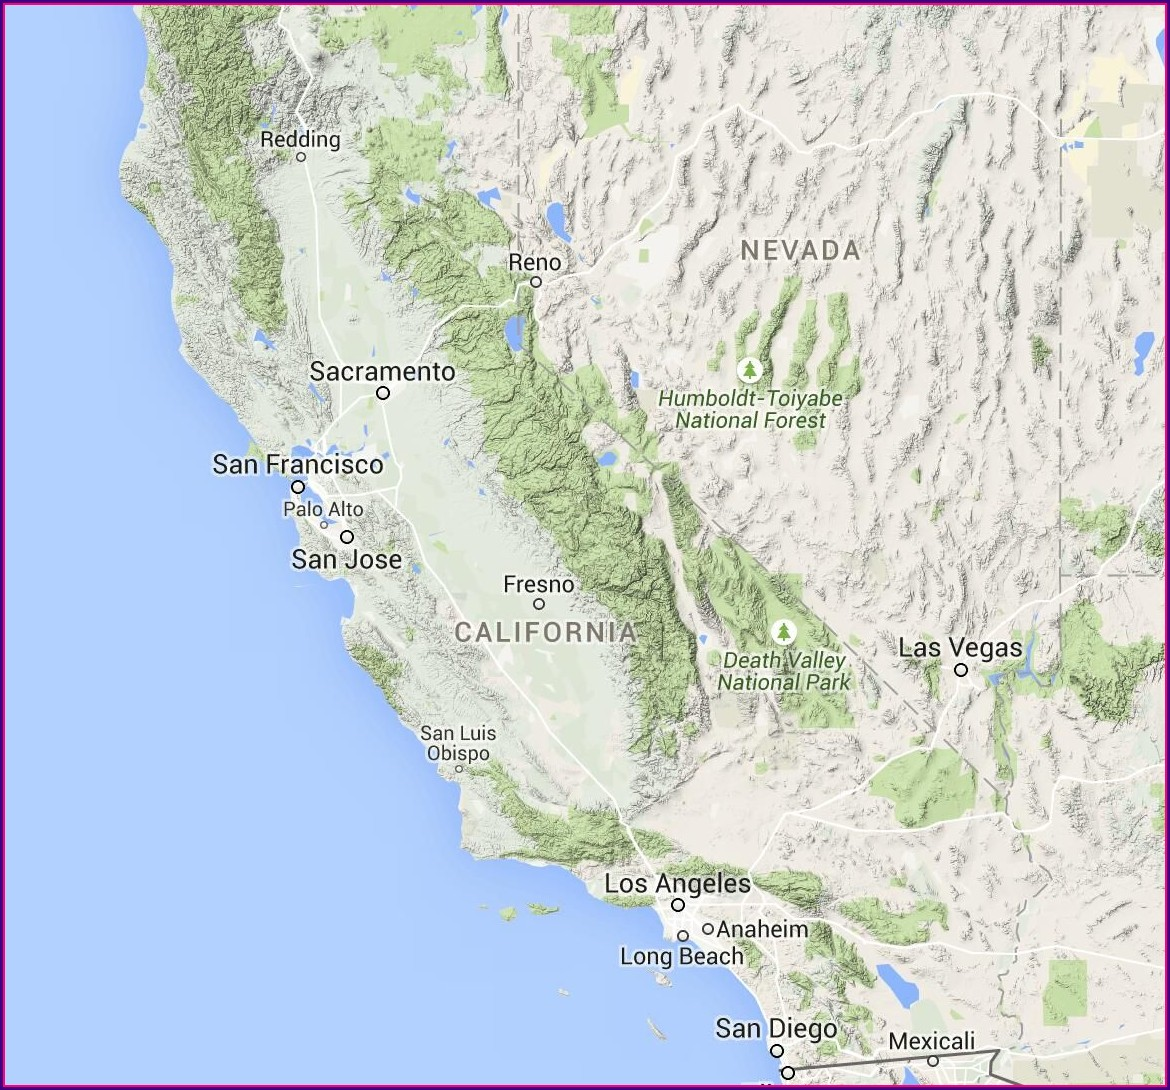 Usda Plant Hardiness Zone Map California